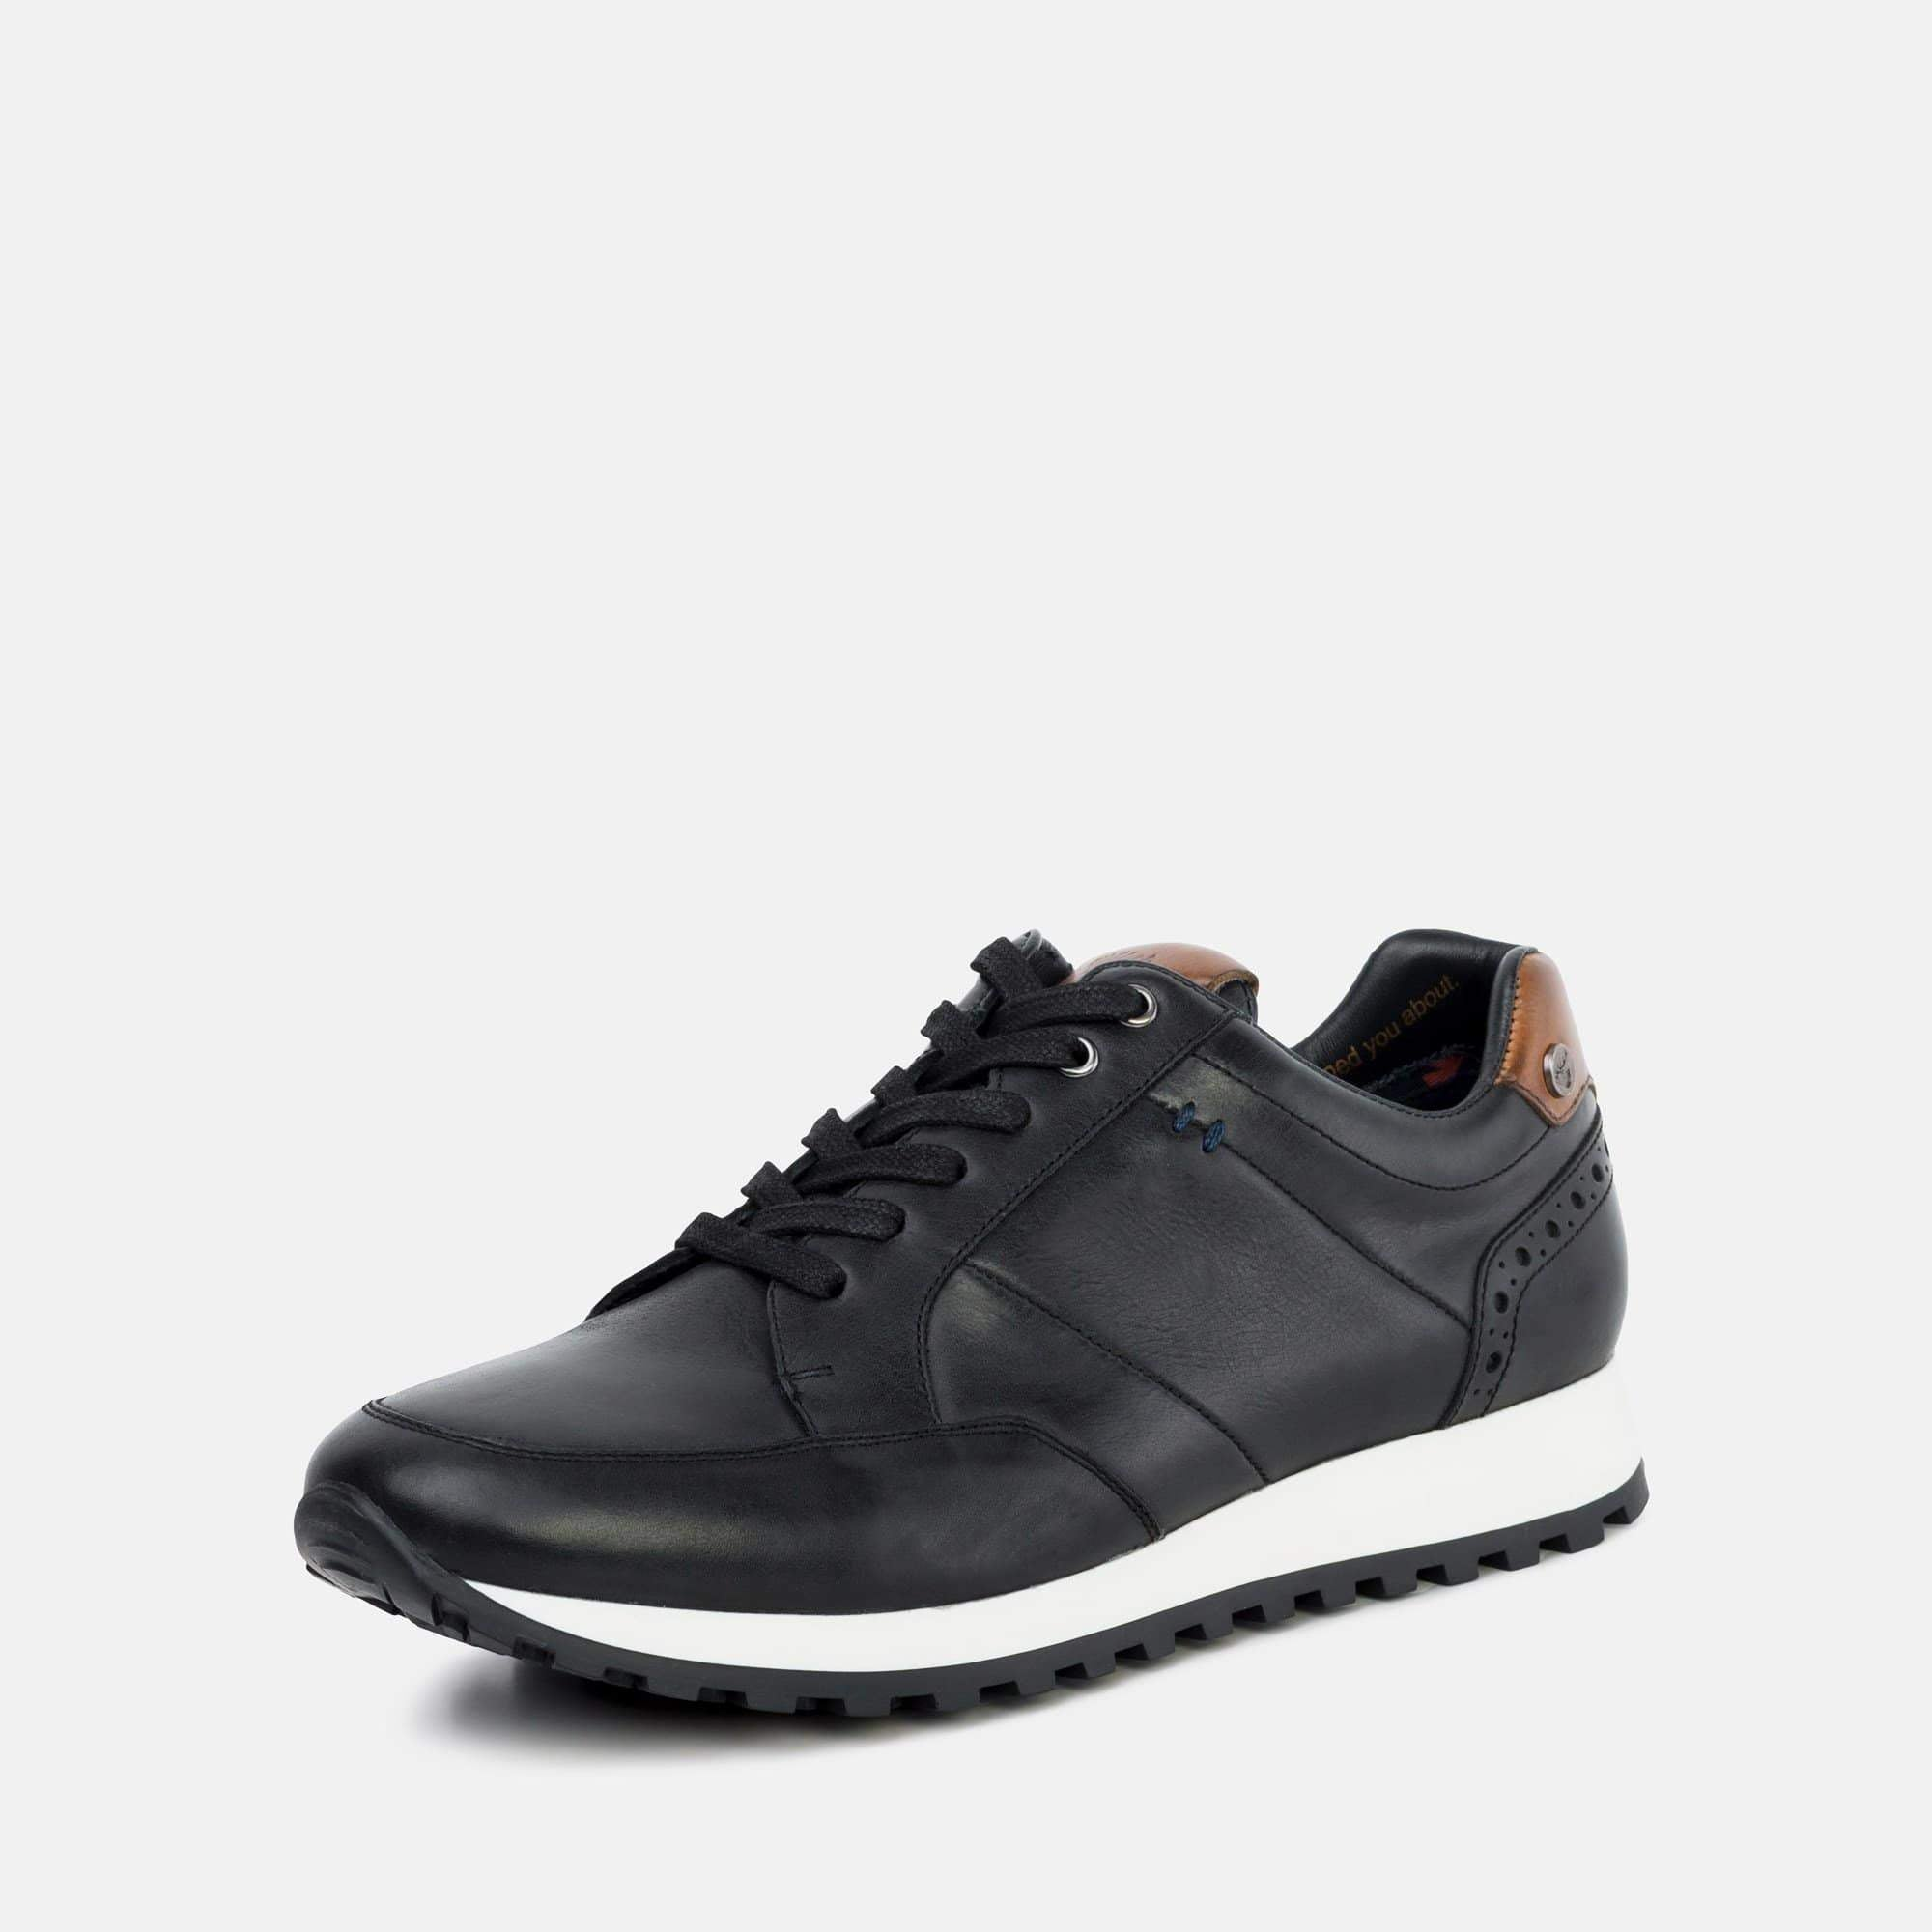 Goodwin Smith Footwear Canvey Black Smart Leather Casual Trainer